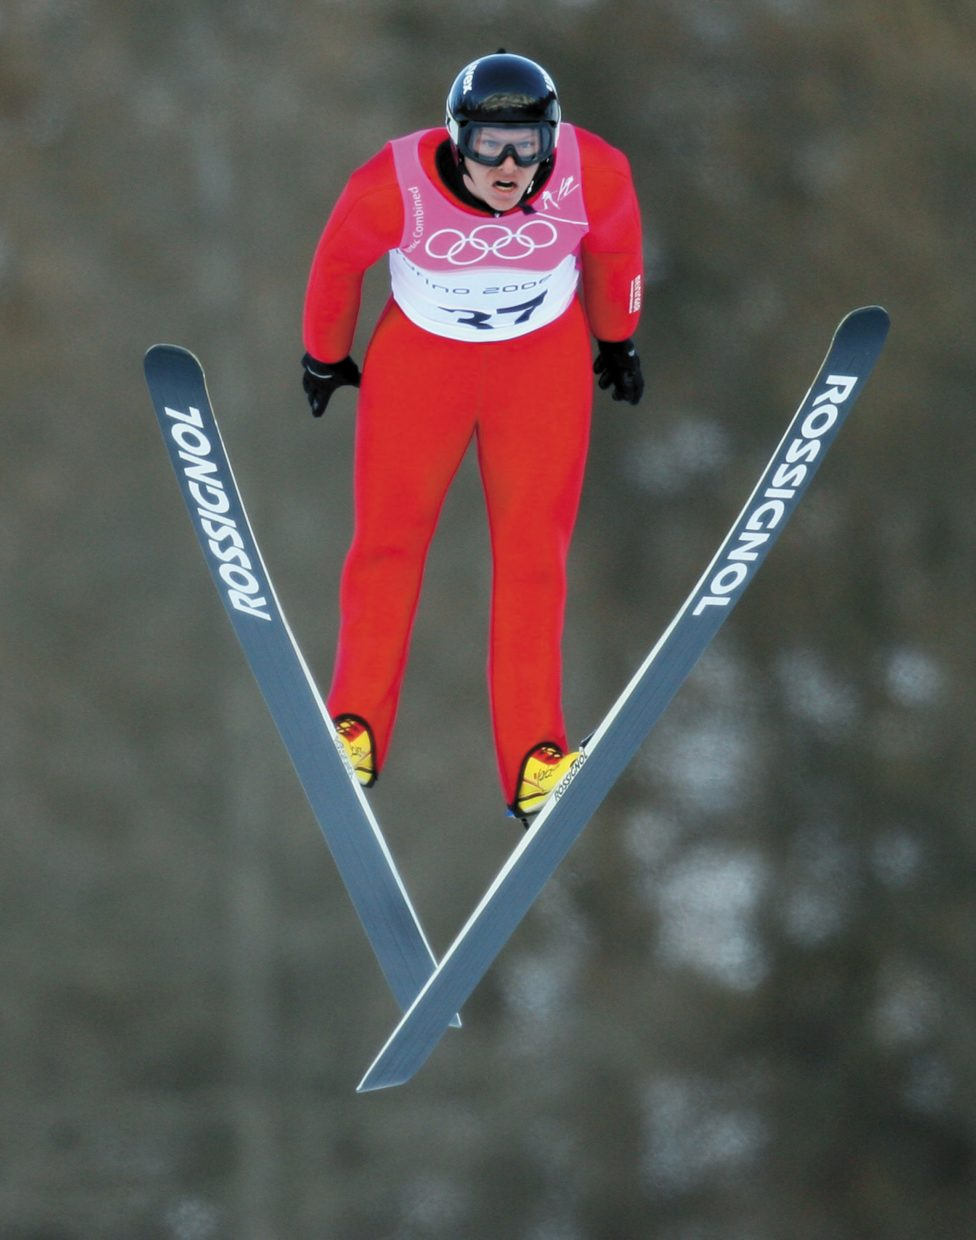 Nordic combined athlete Todd Lodwick, of the U.S., soars through the air during the first free practice session for the Nordic combined at the Torino 2006 Winter Olympic Games in Pragelato, Italy,on Feb. 8, 2006.